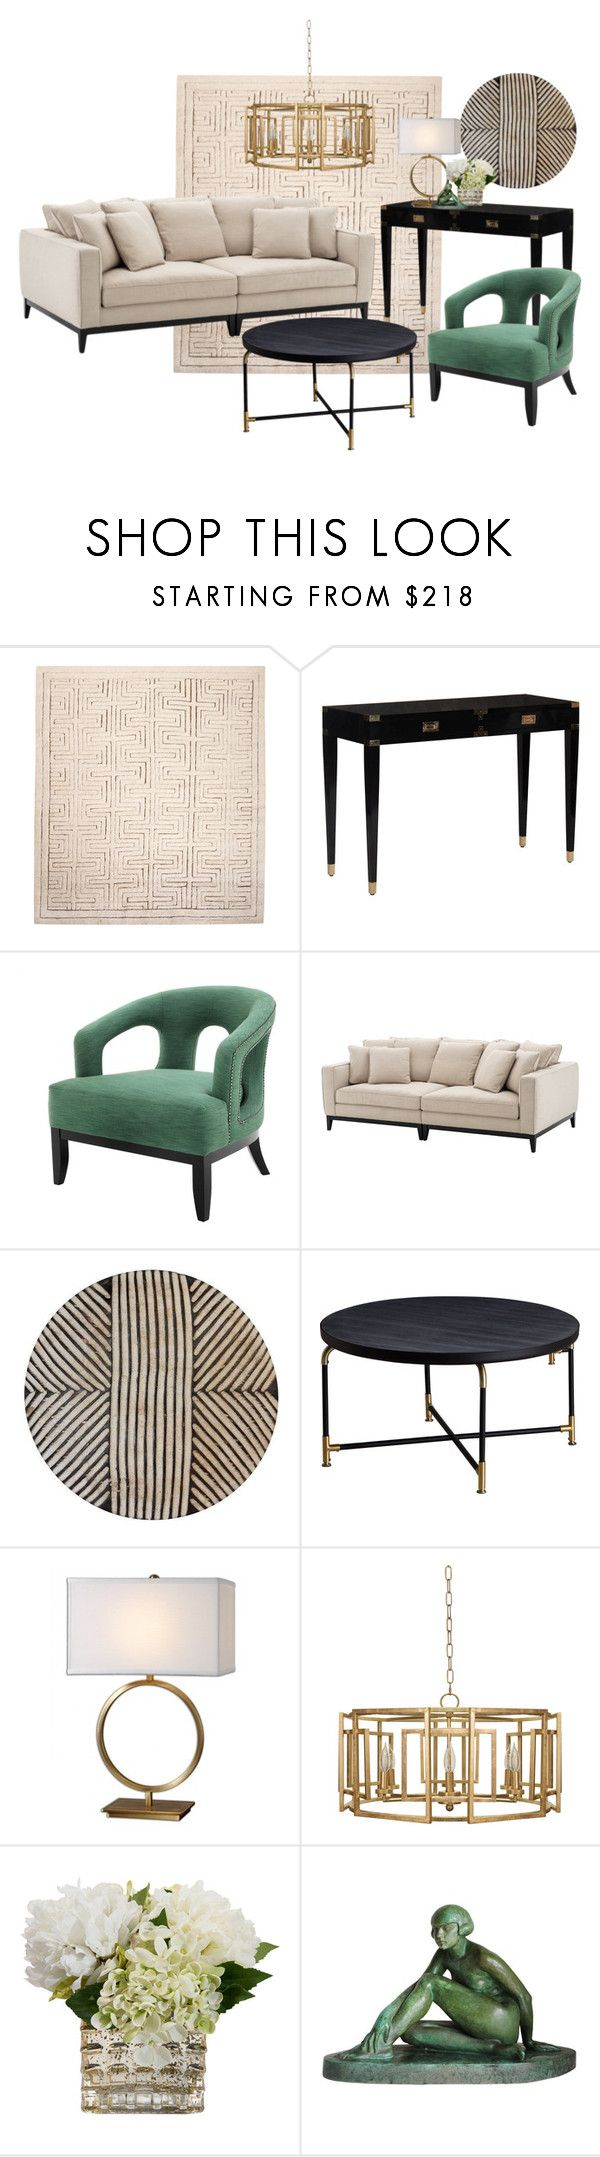 """Emerald & Gold"" by sally-w on Polyvore featuring interior, interiors, interior design, home, home decor, interior decorating, Selamat and Eichholtz"